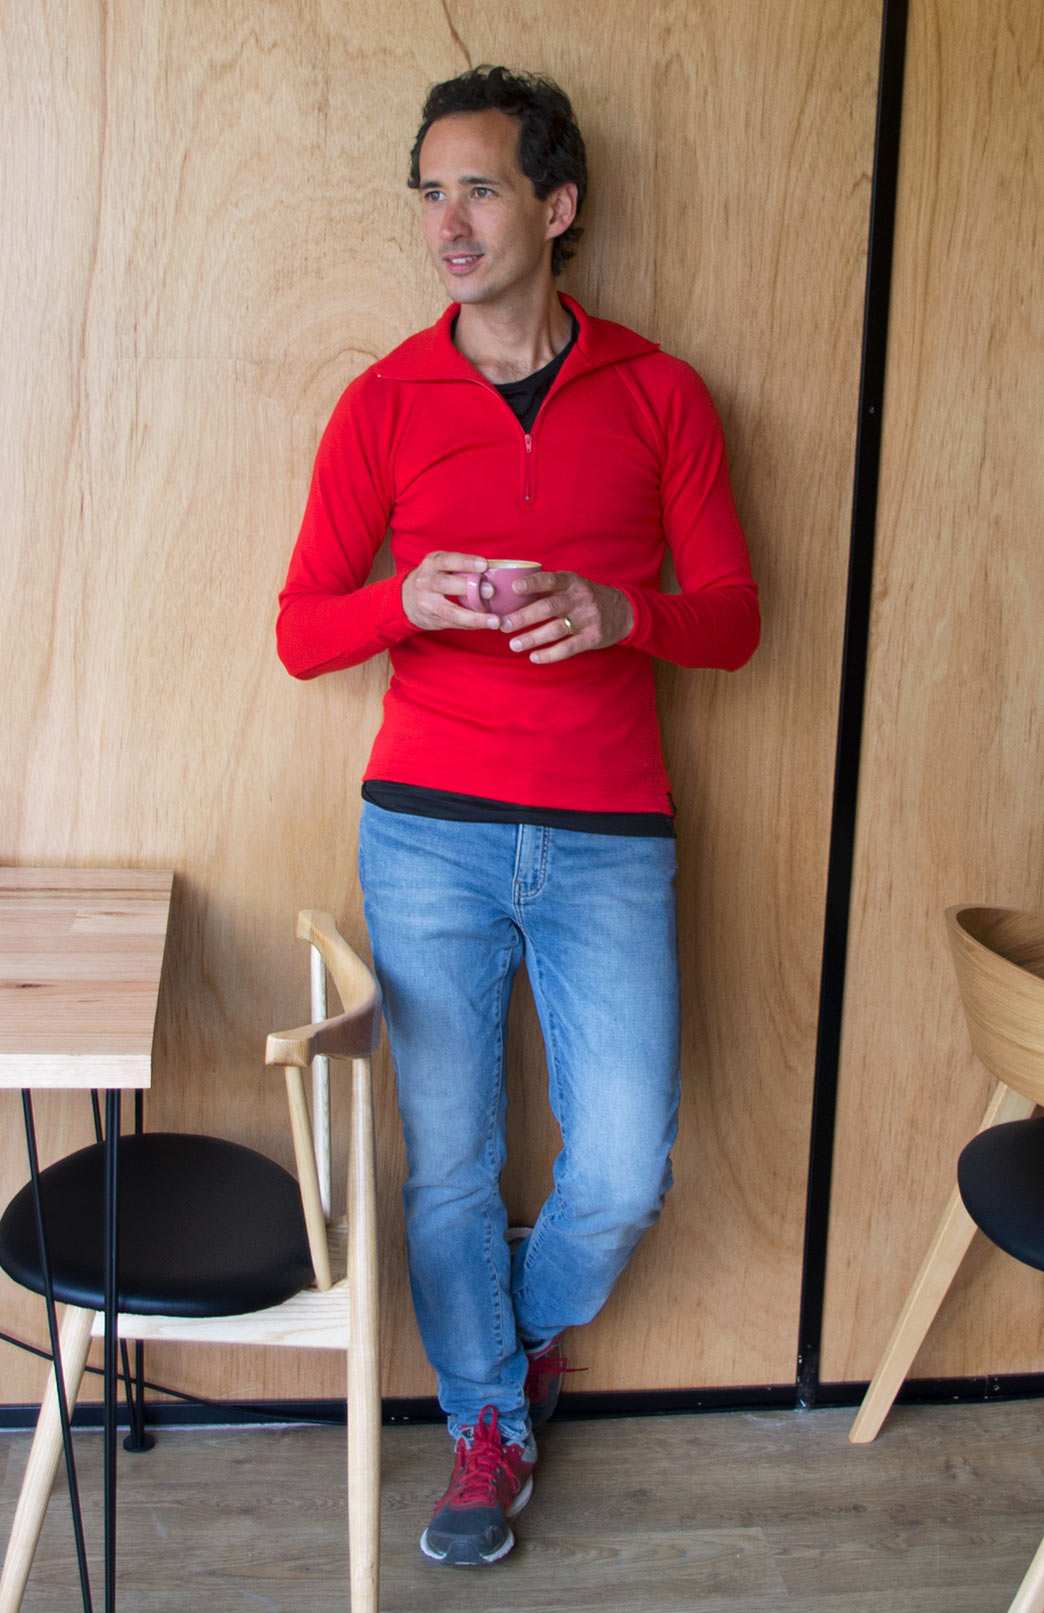 Zip Neck Top - Heavyweight (~360g) - Men's Pure Merino Wool Heavyweight Red Zip Neck Pull-Over Top with Thumb Holes for Bush Walking and Outdoor Sports - Smitten Merino Tasmania Australia